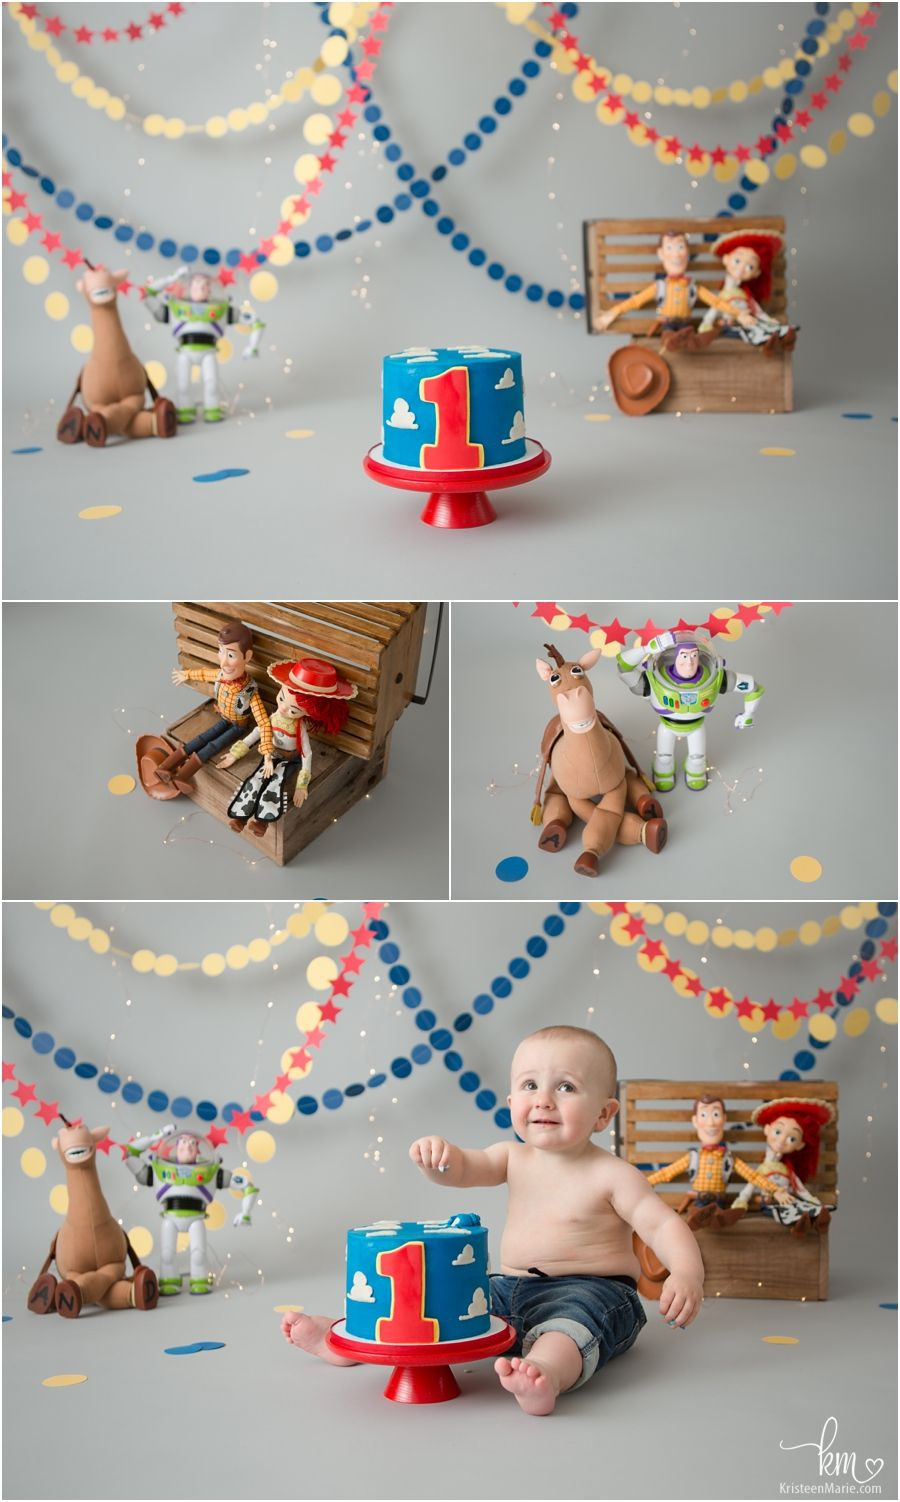 Pin By Meredith Odum On Brayden S 1st Bday In 2020 Toy Story Cakes Toy Story Birthday Toy Story Birthday Party